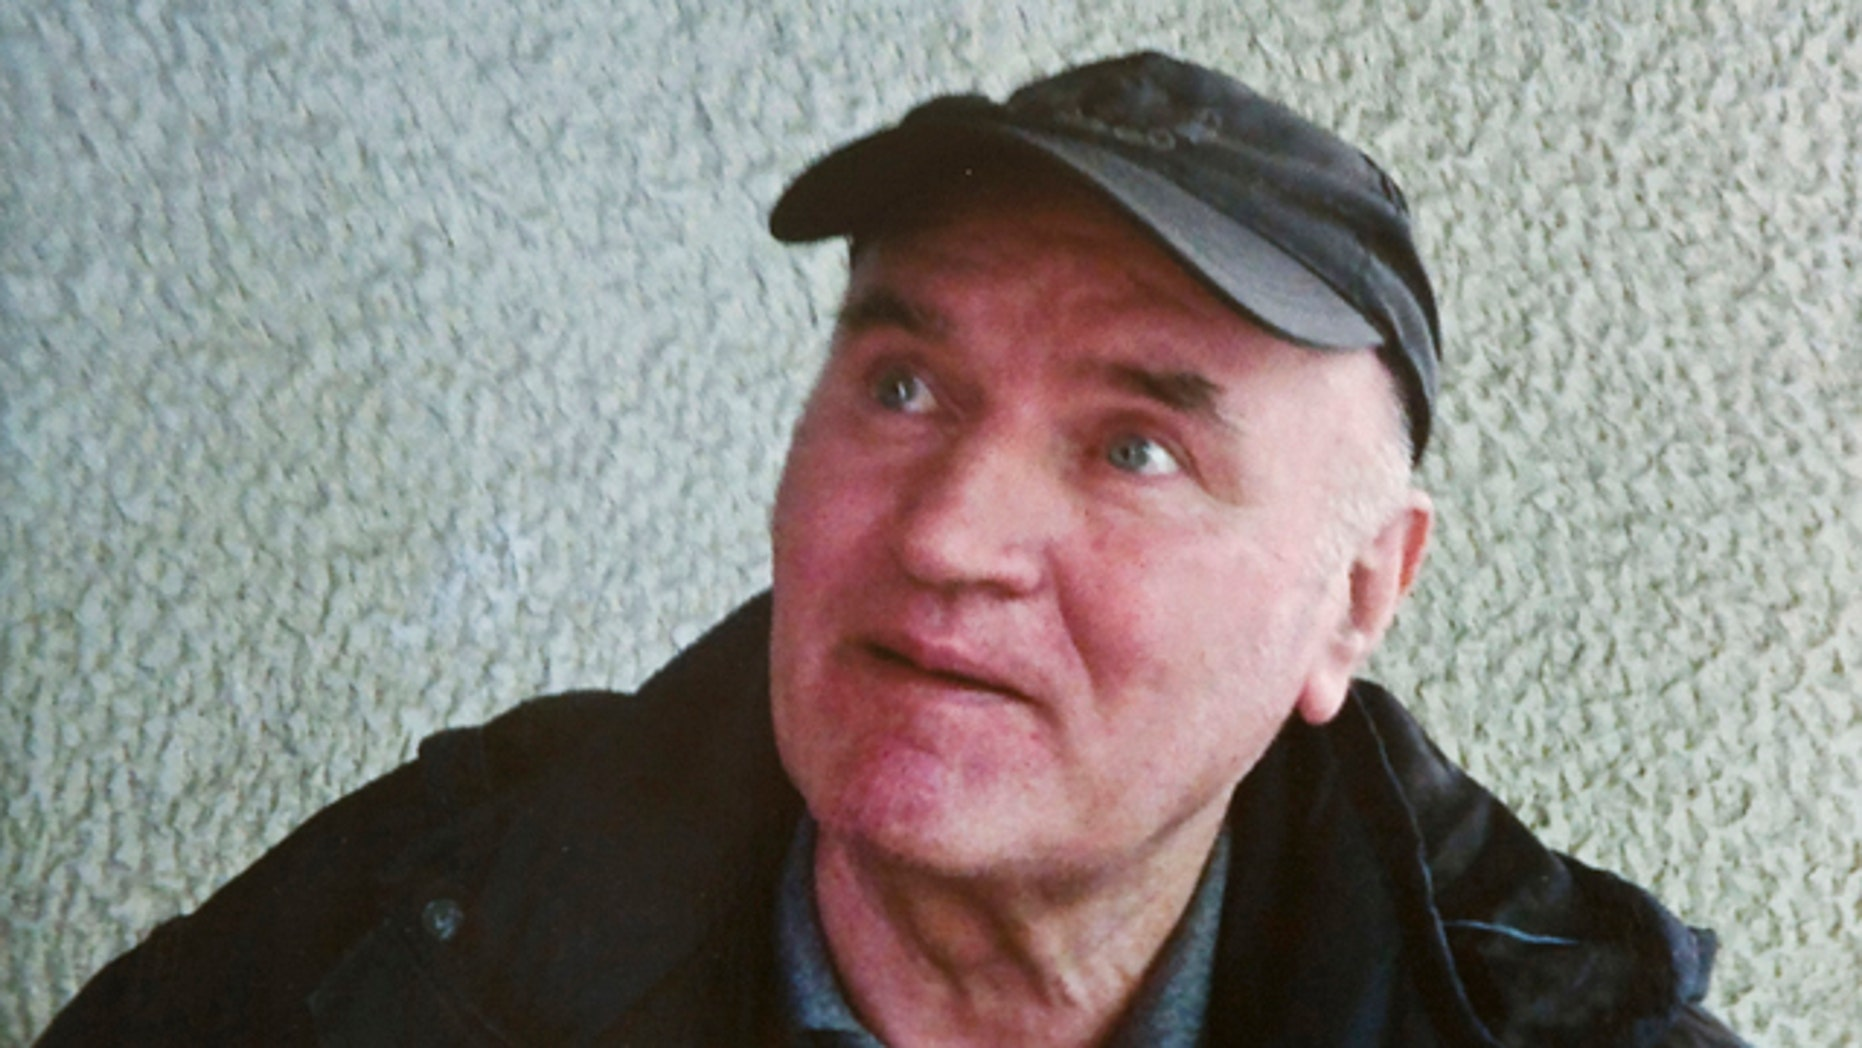 FILE: Twenty years after Serb forces unleashed a brutal campaign of ethnic cleansing in Bosnia, their military commander Gen. Ratko Mladic is finally going on trial